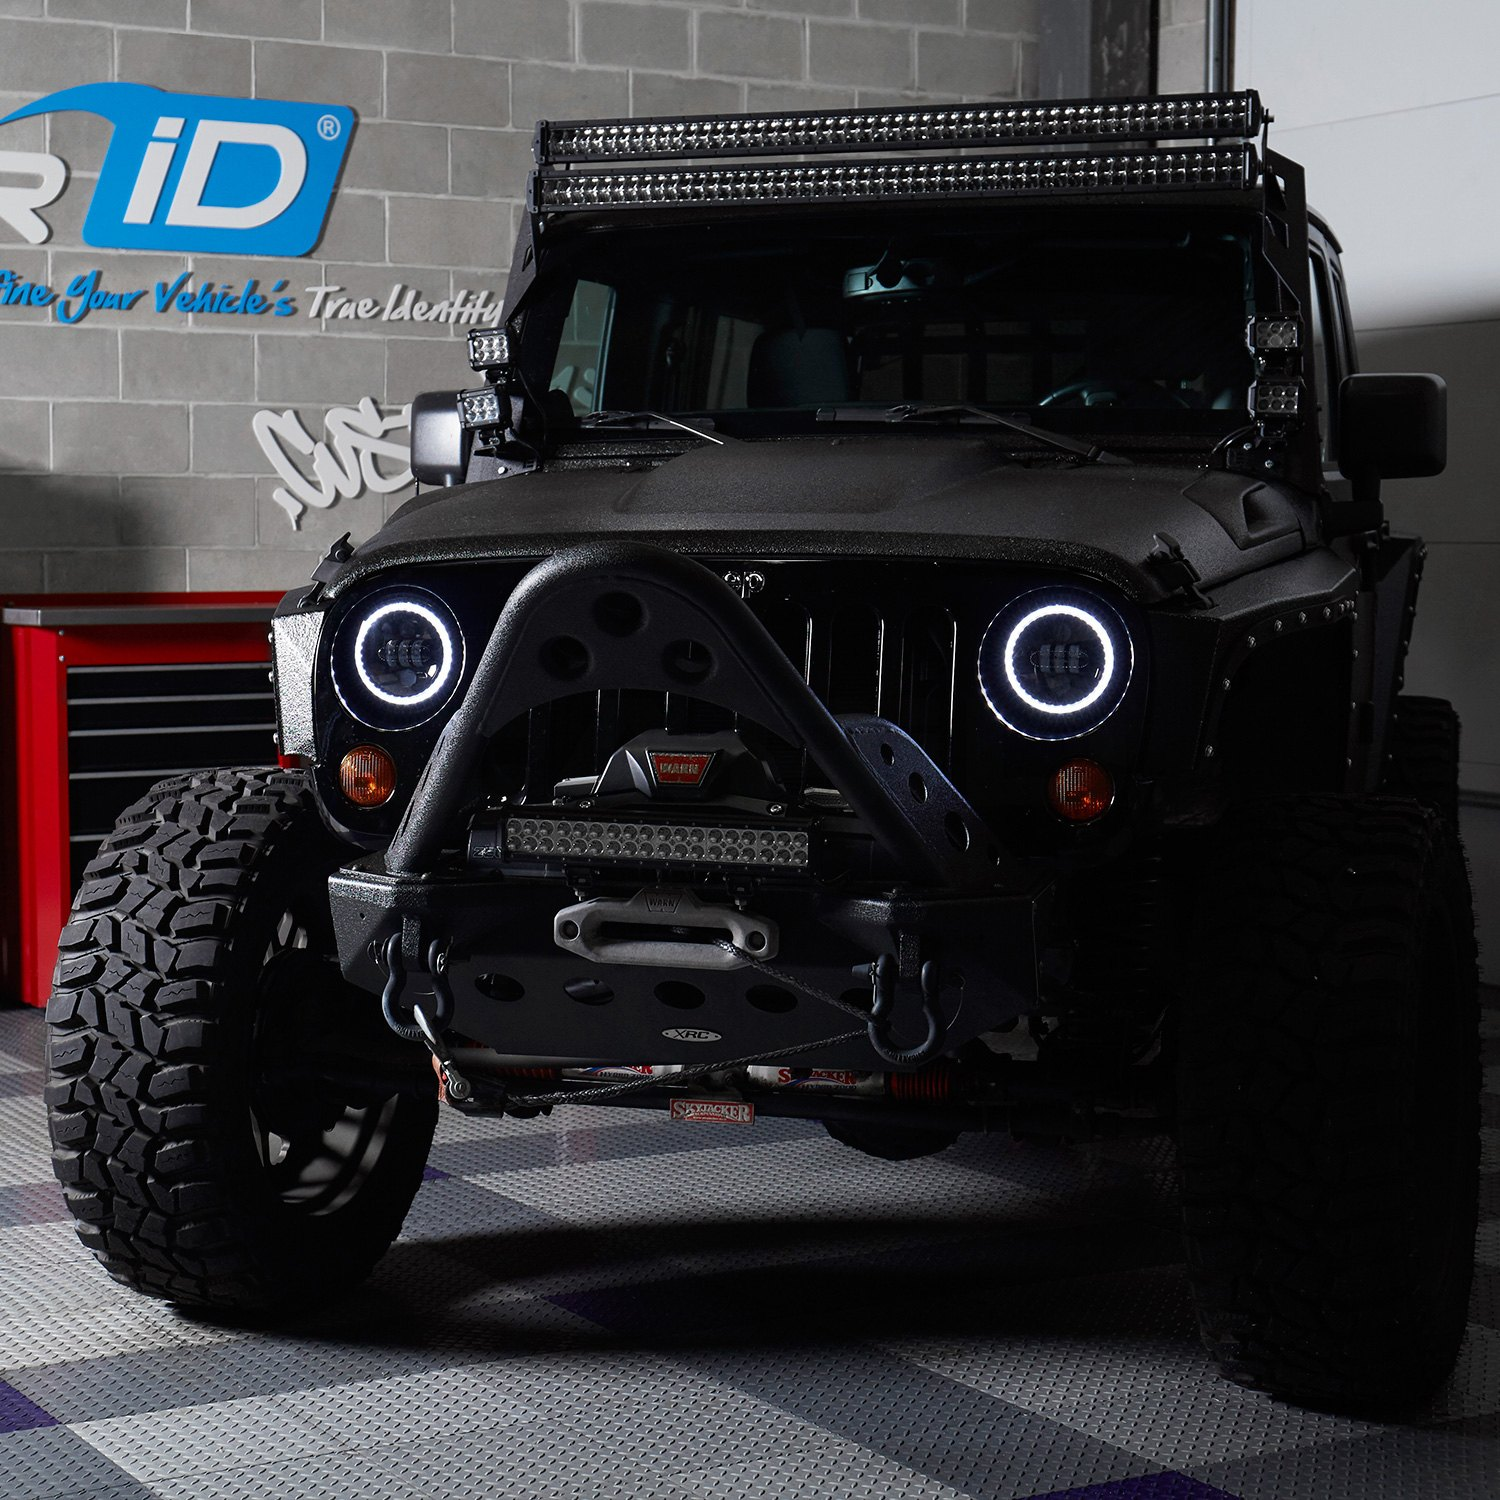 stk round a on with lid installed jeep wrangler projector switchback lumen led black headlights blk halo